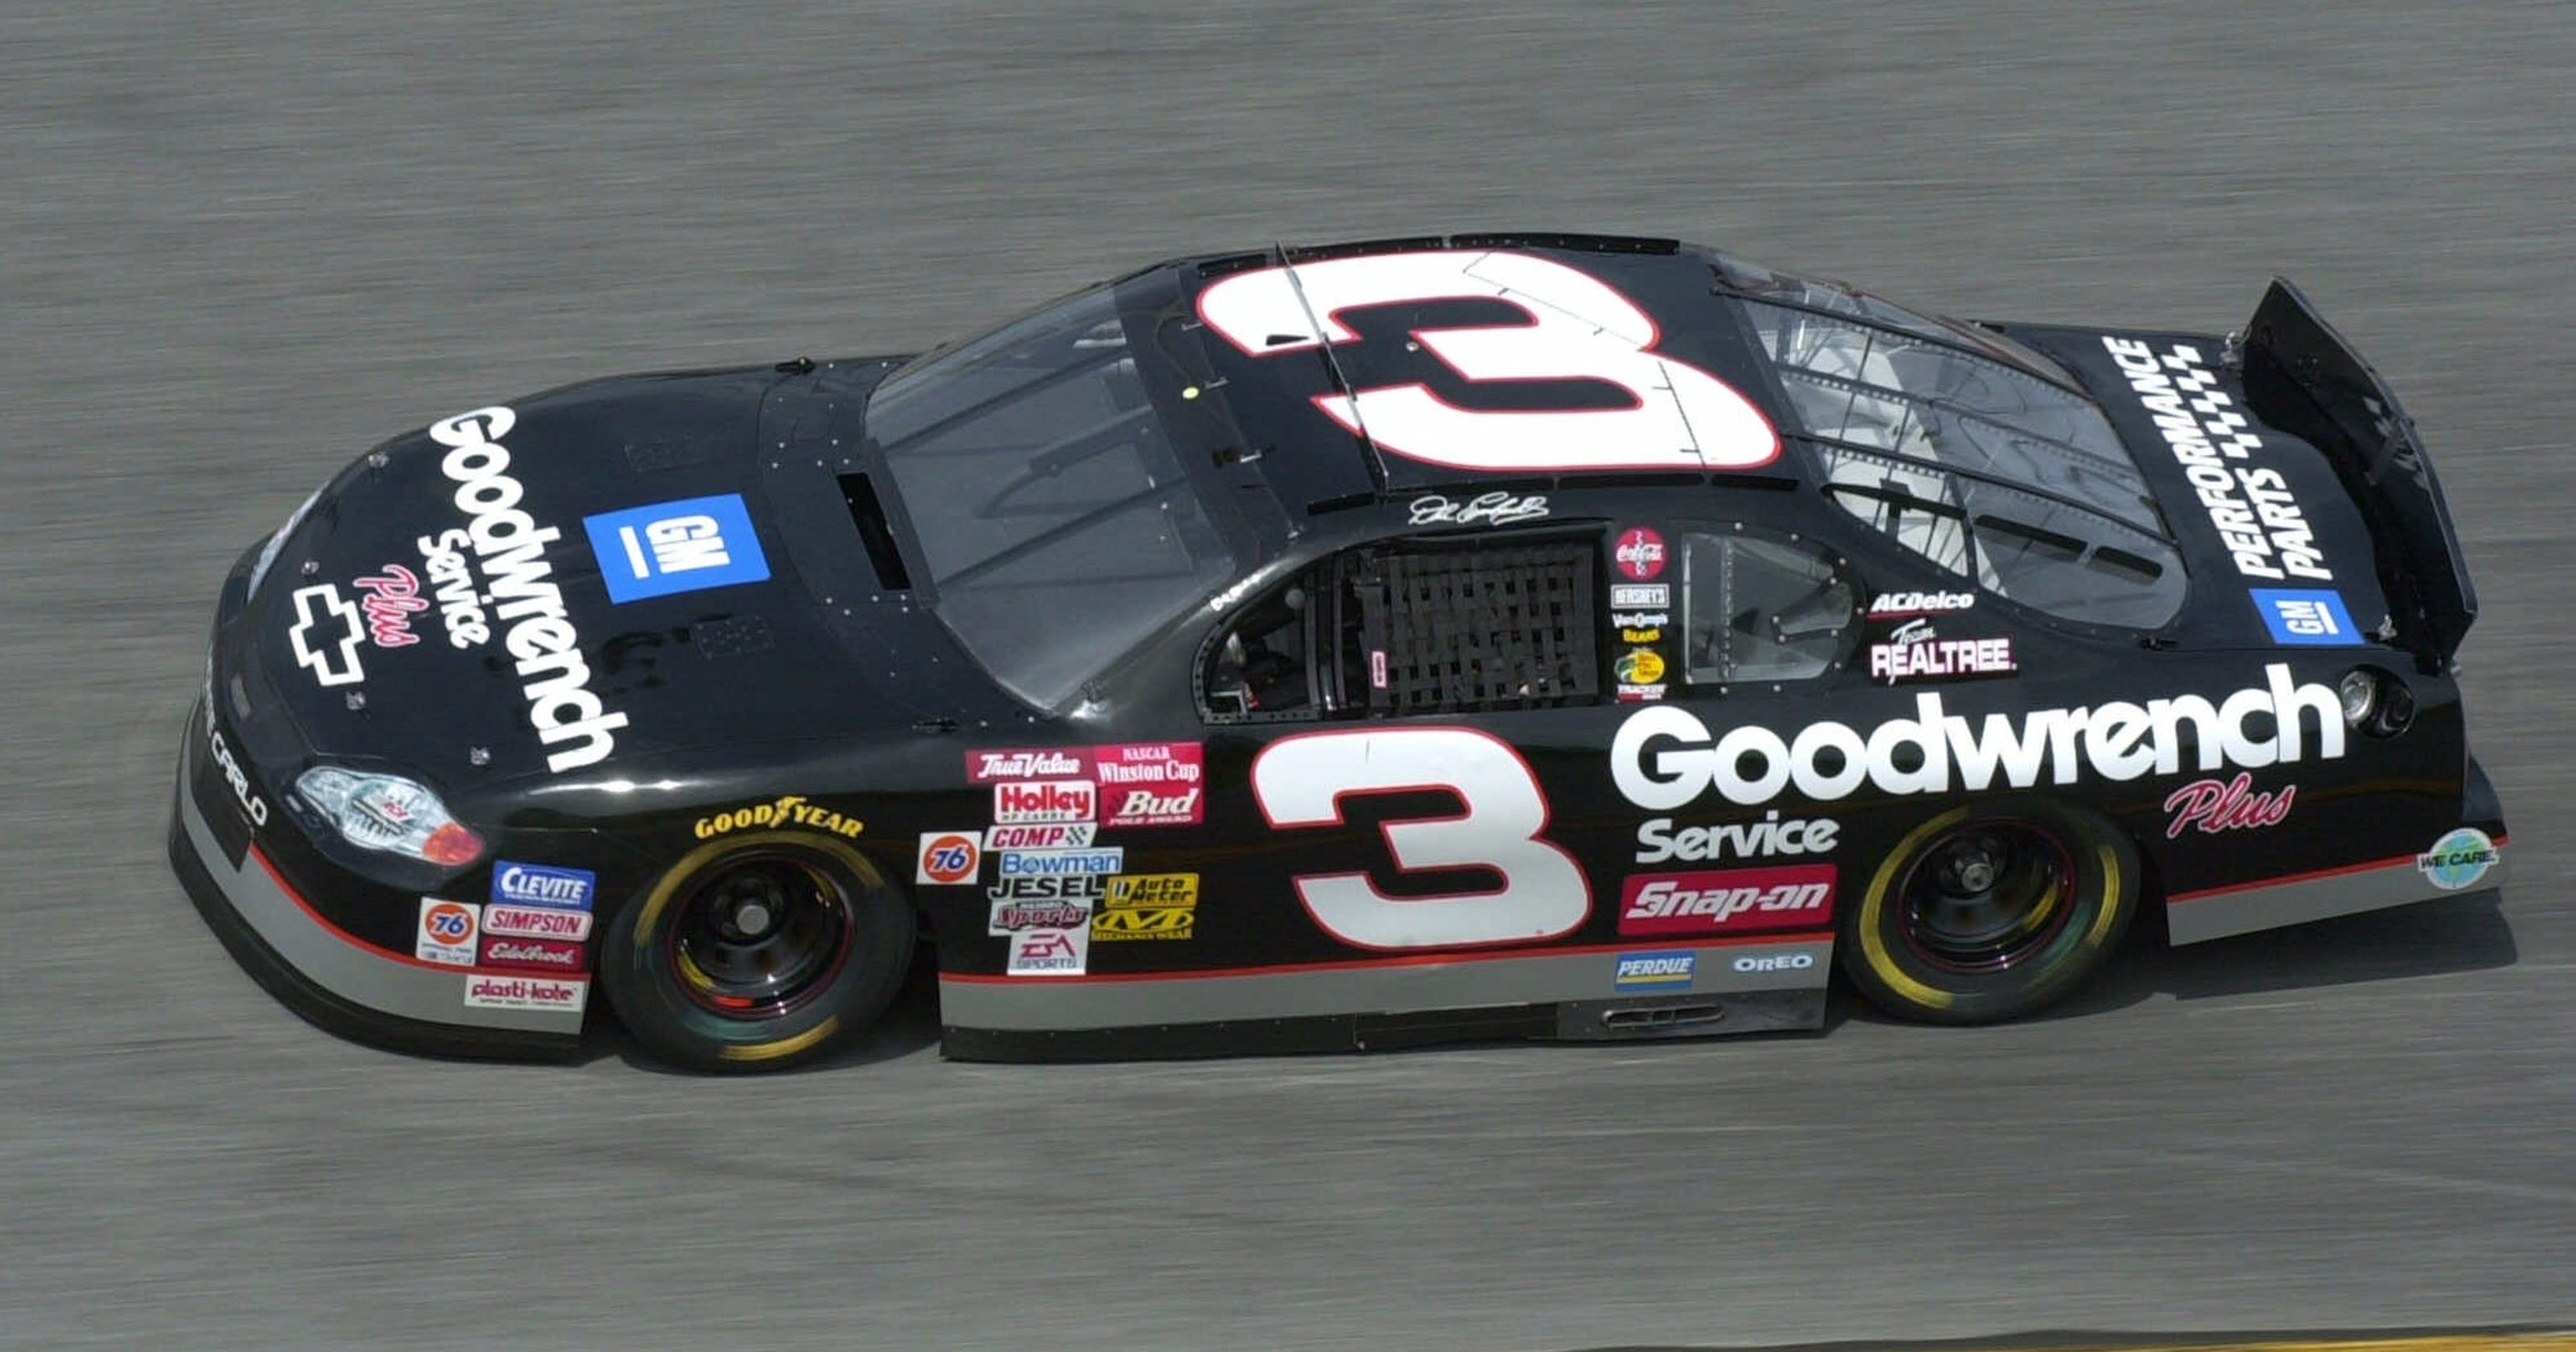 16 Best Dale Earnhardt Sr 3 Images On Pinterest